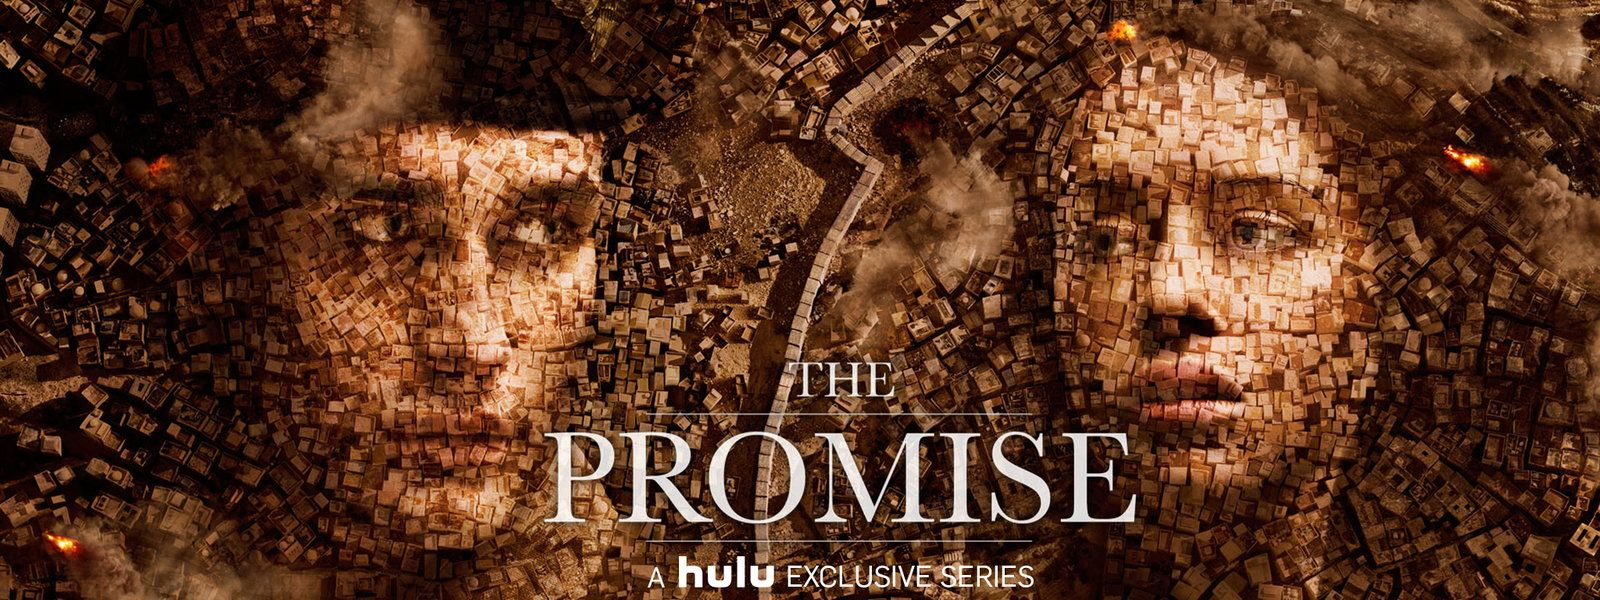 Watch The Promise online Free Hulu Such a great series